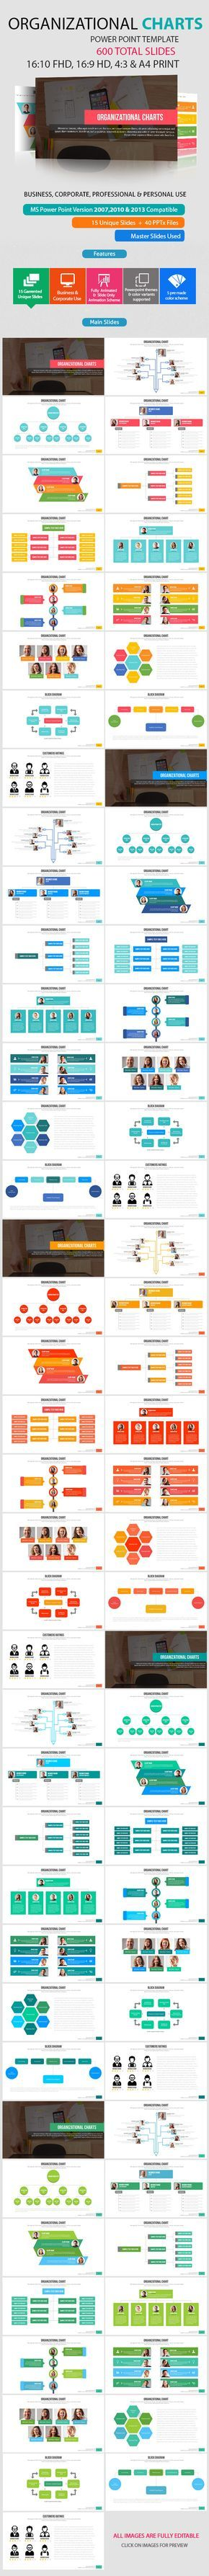 Organizational Chart Power Point Presentation - Abstract PowerPoint Templates                                                                                                                                                                                 More